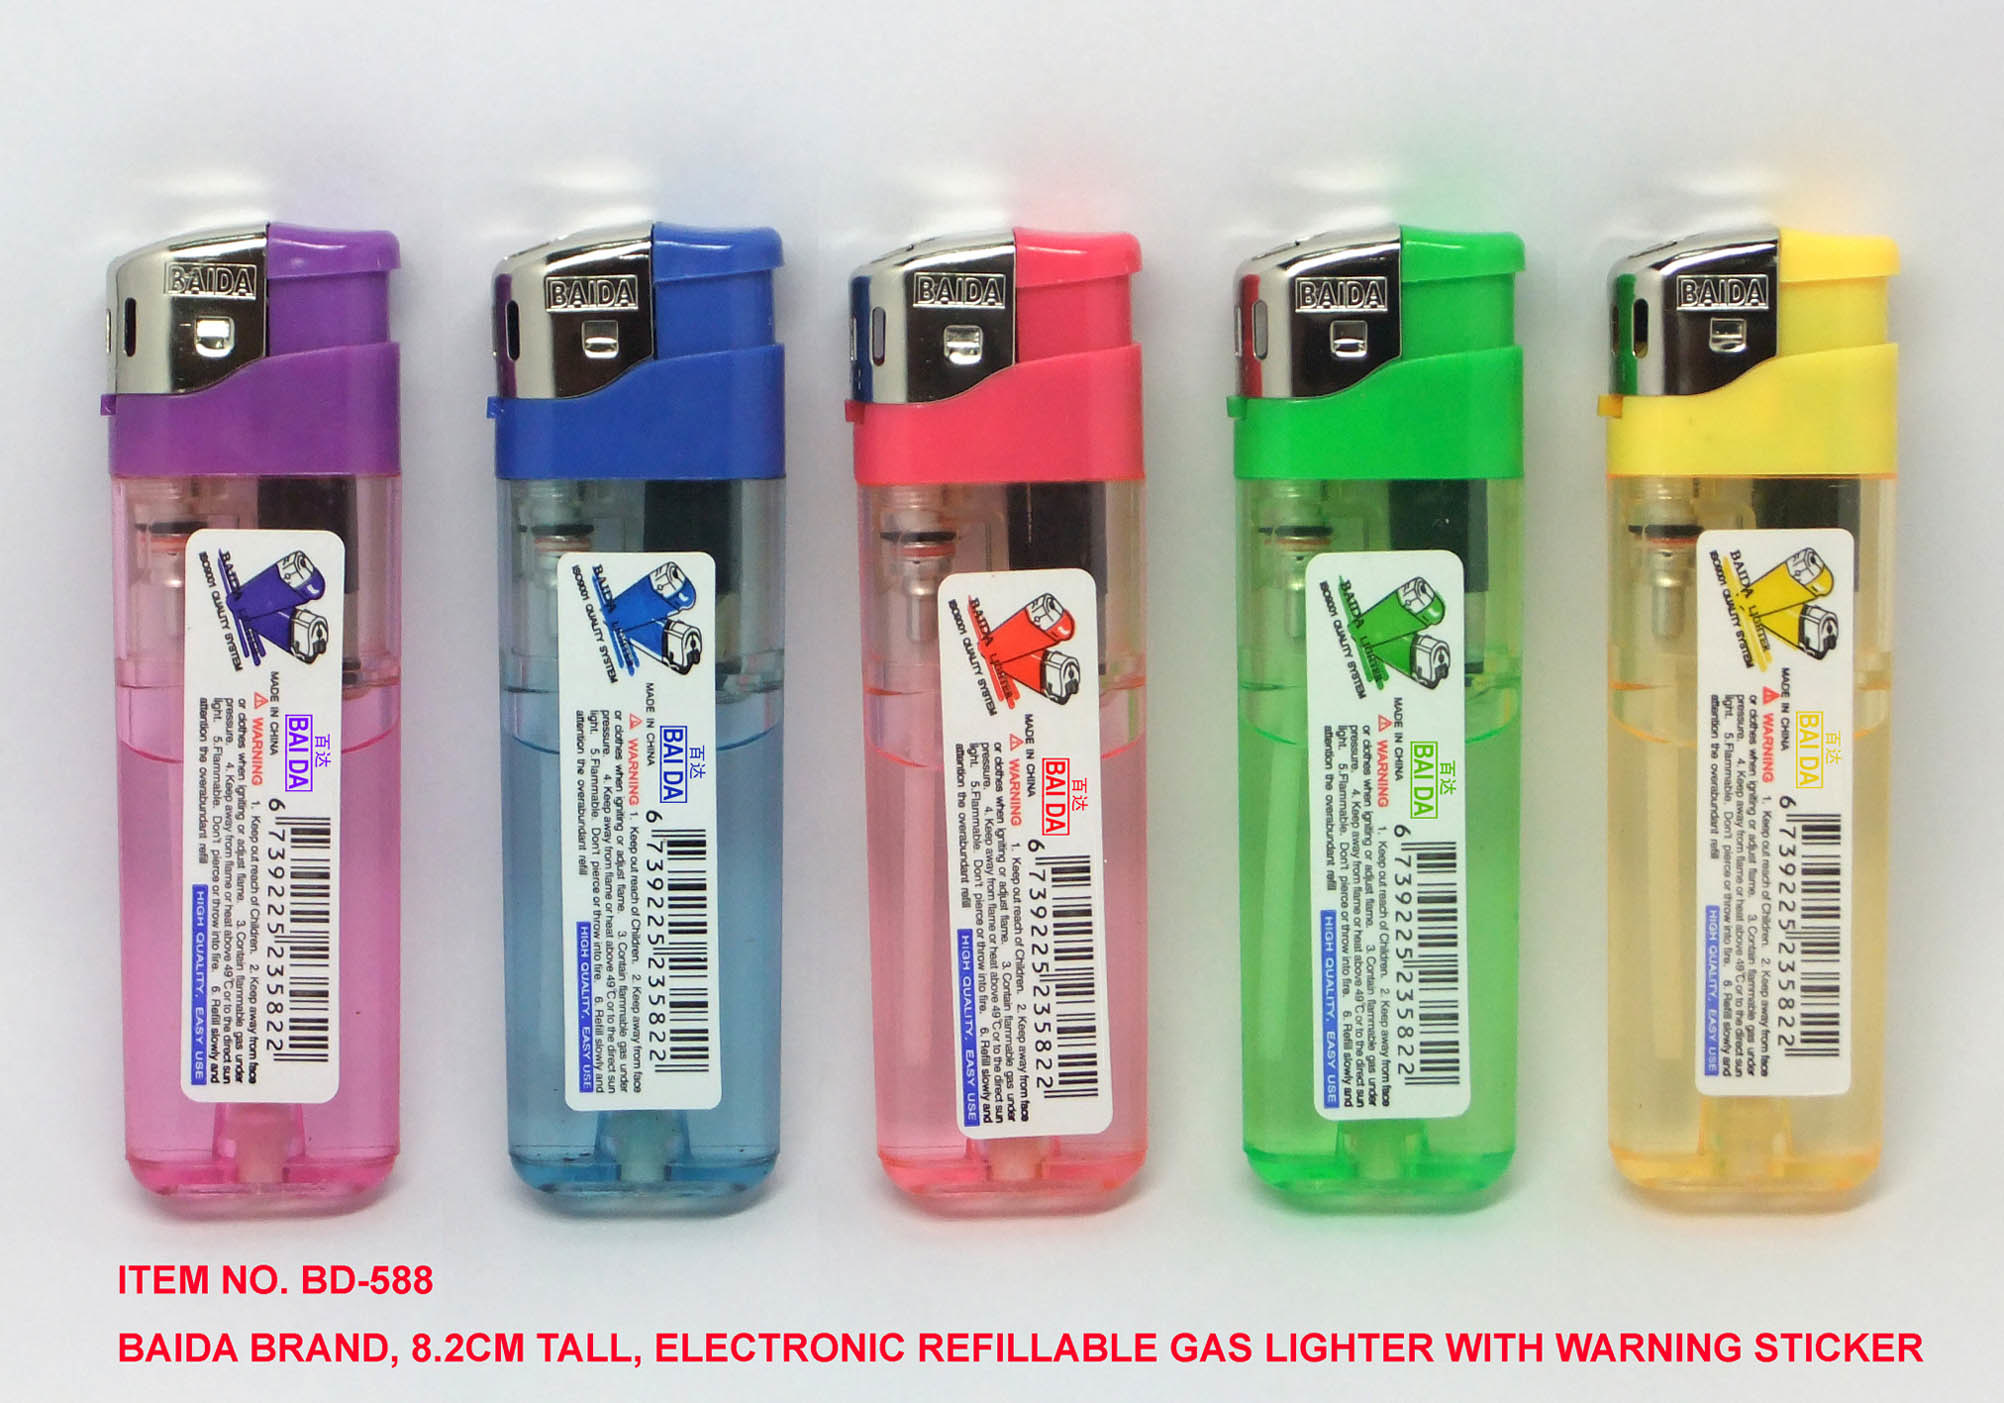 (Item No. BD-588) Baida Lighter, Electronic Refillable Gas Lighter